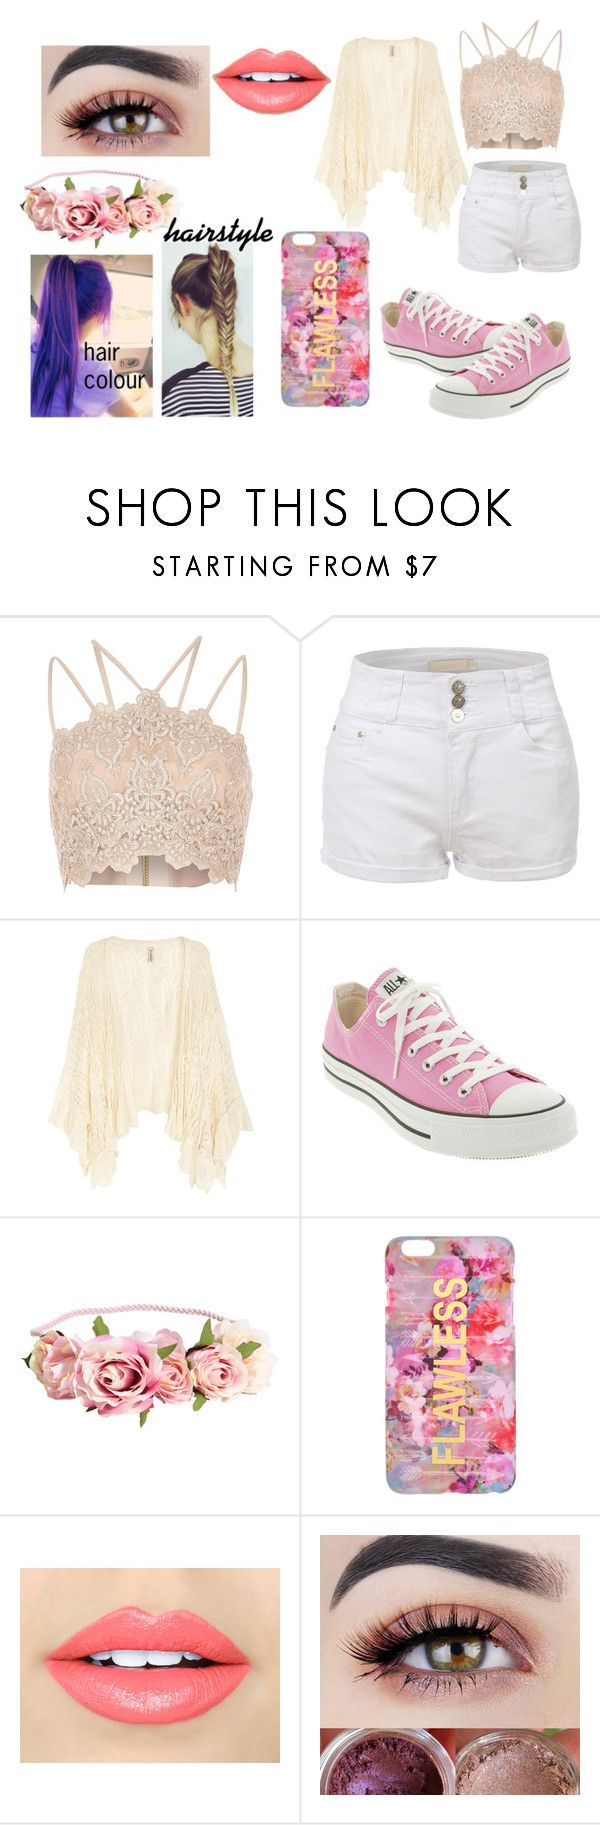 """""""Spring fair outfit"""" by angel-heart-meow on Polyvore featuring River Island, LE3NO, Converse and Fiebiger"""